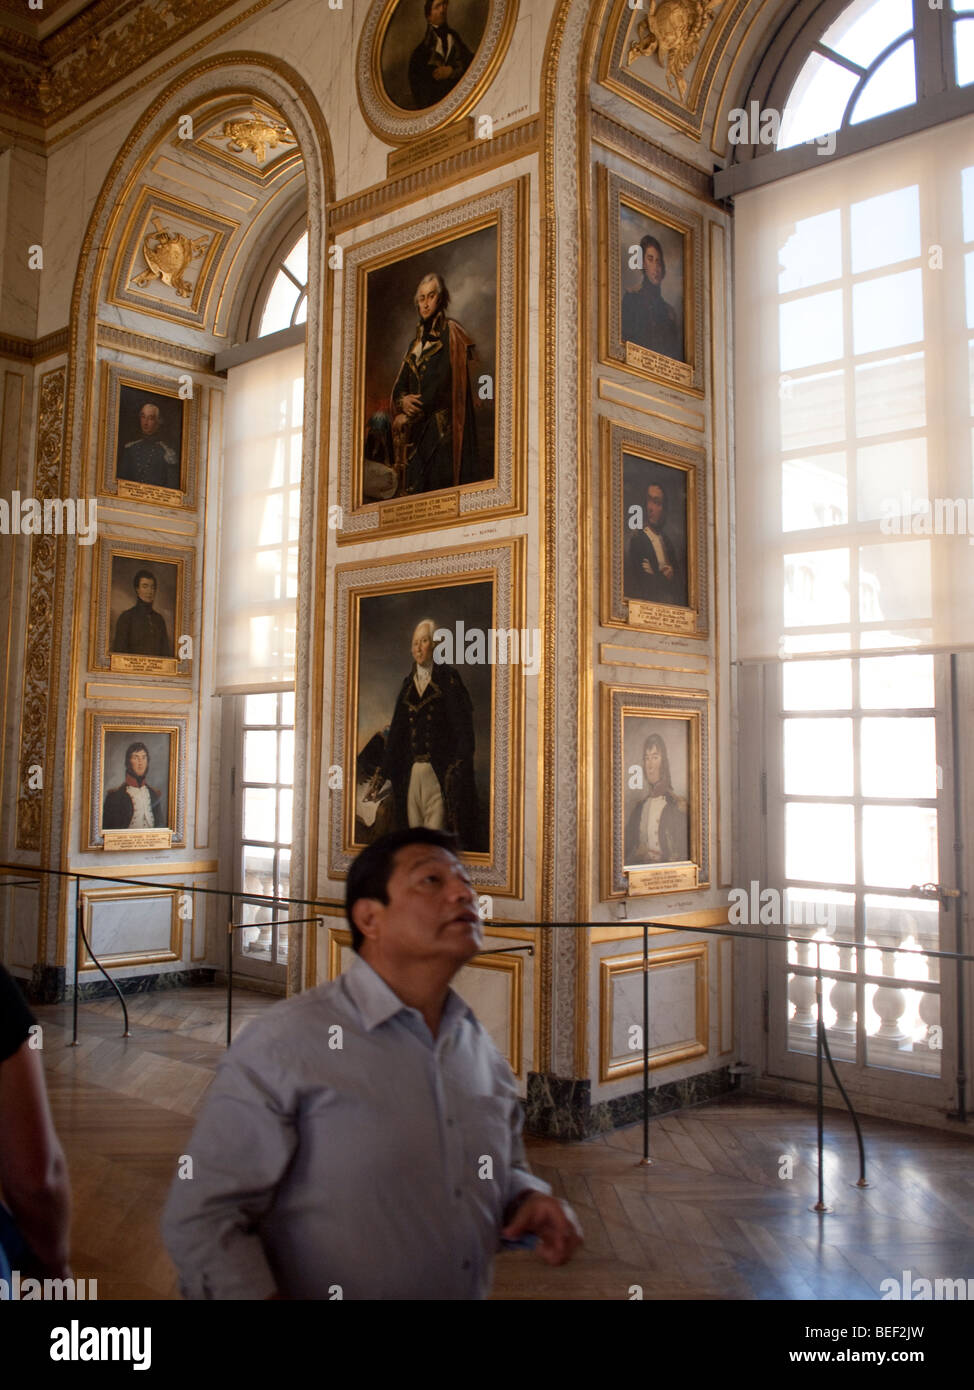 A photograph from a series of Palace of Versailles in France. Stock Photo